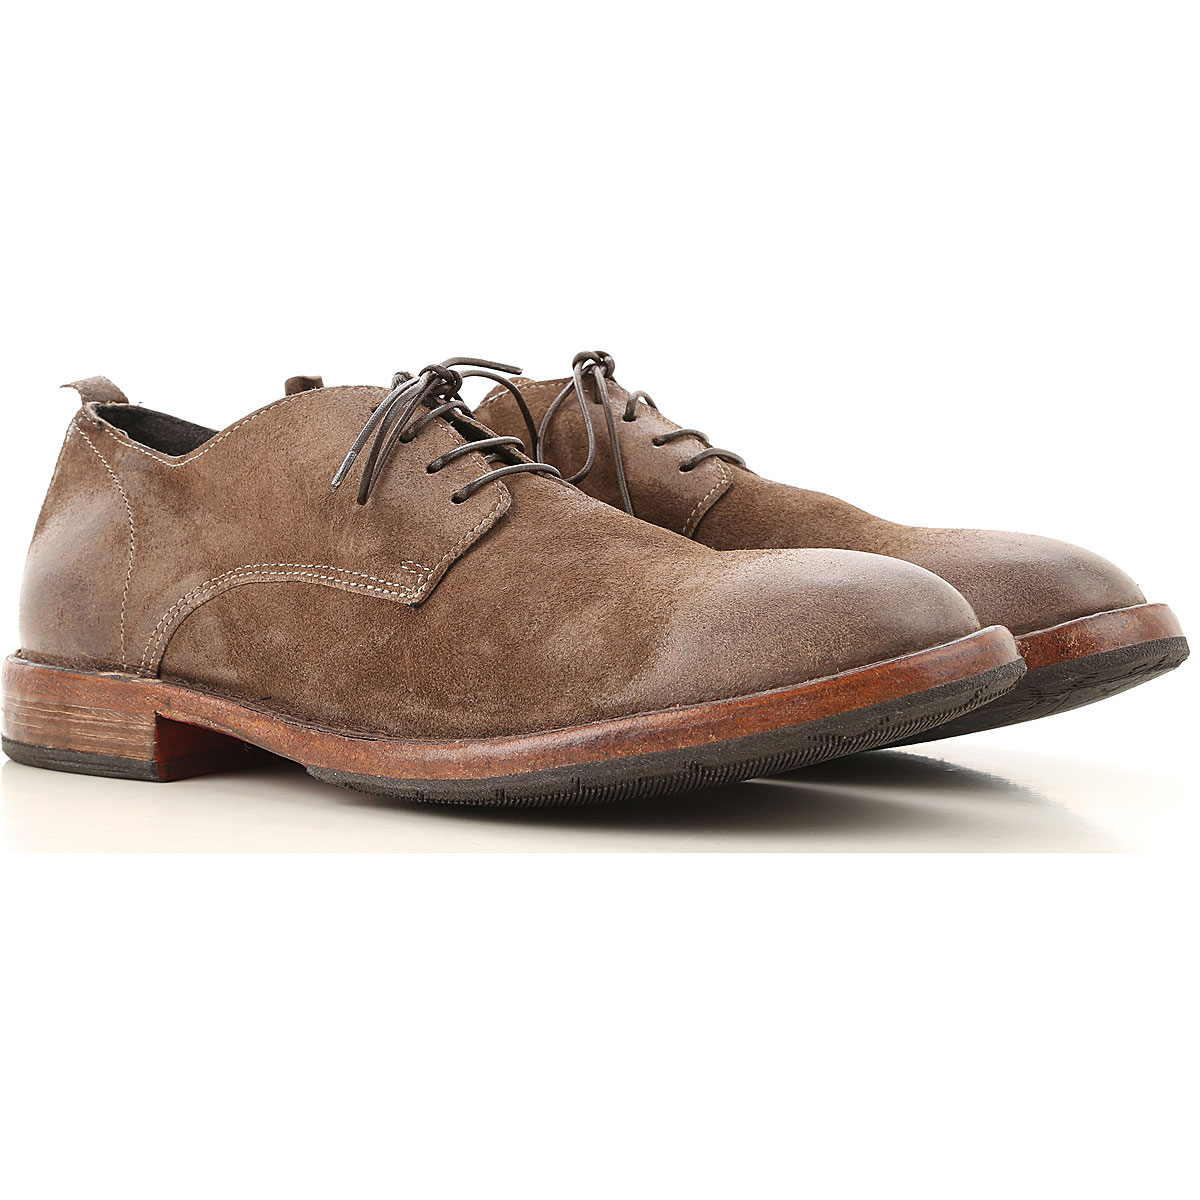 Moma Lace Up Shoes for Men Oxfords, Derbies and Brogues On Sale, Ash Brown, Leather, 2019, 10 7.5 8 9